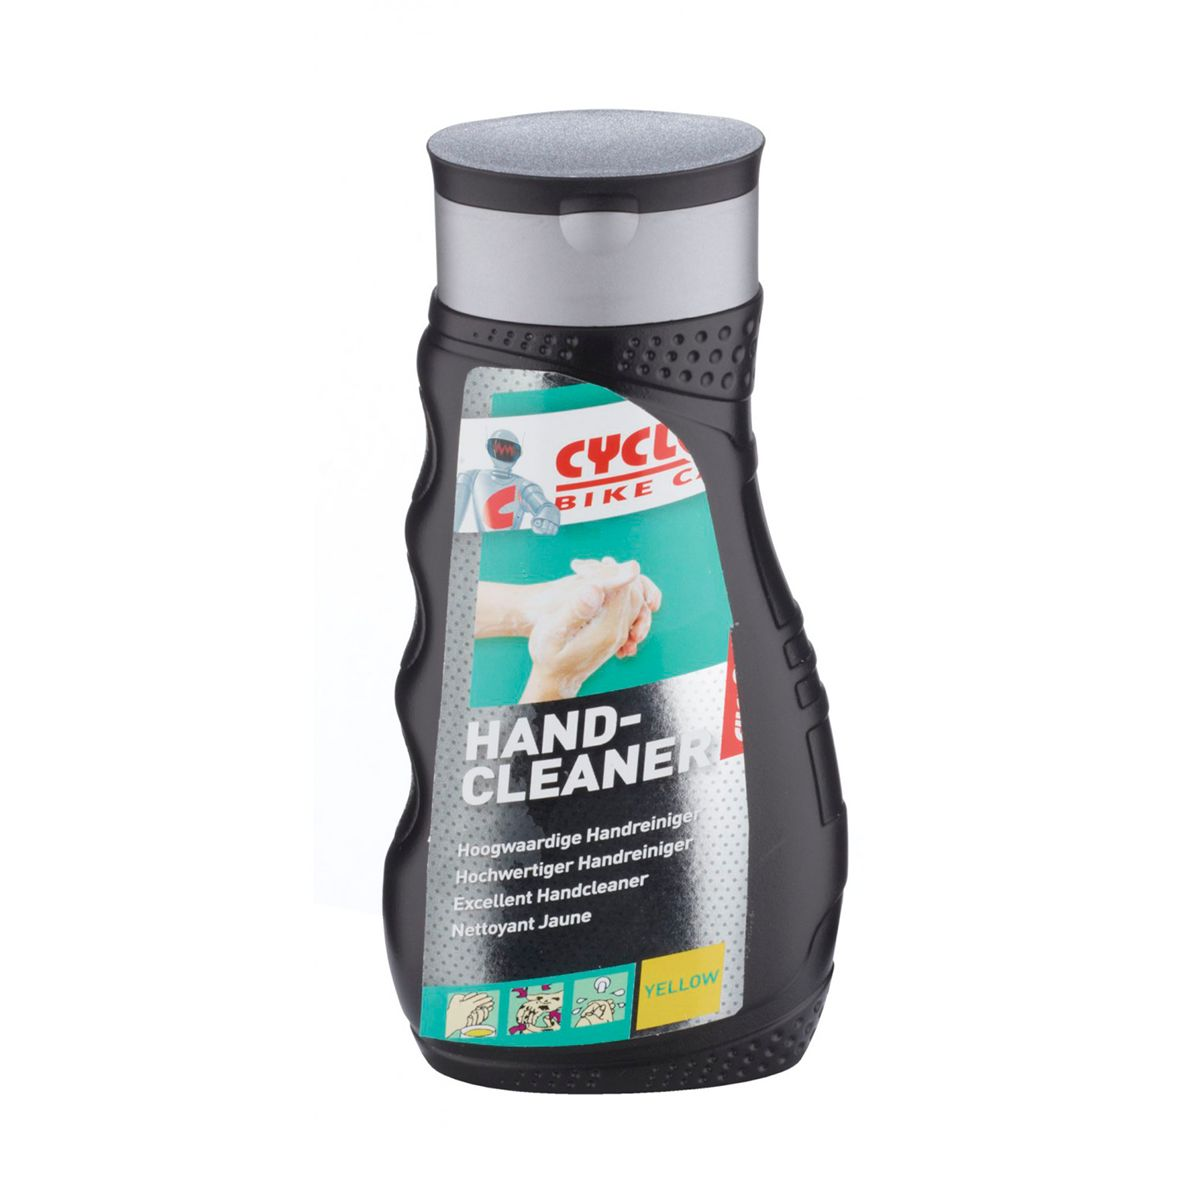 Handcleaner Cleaning Handreiniger